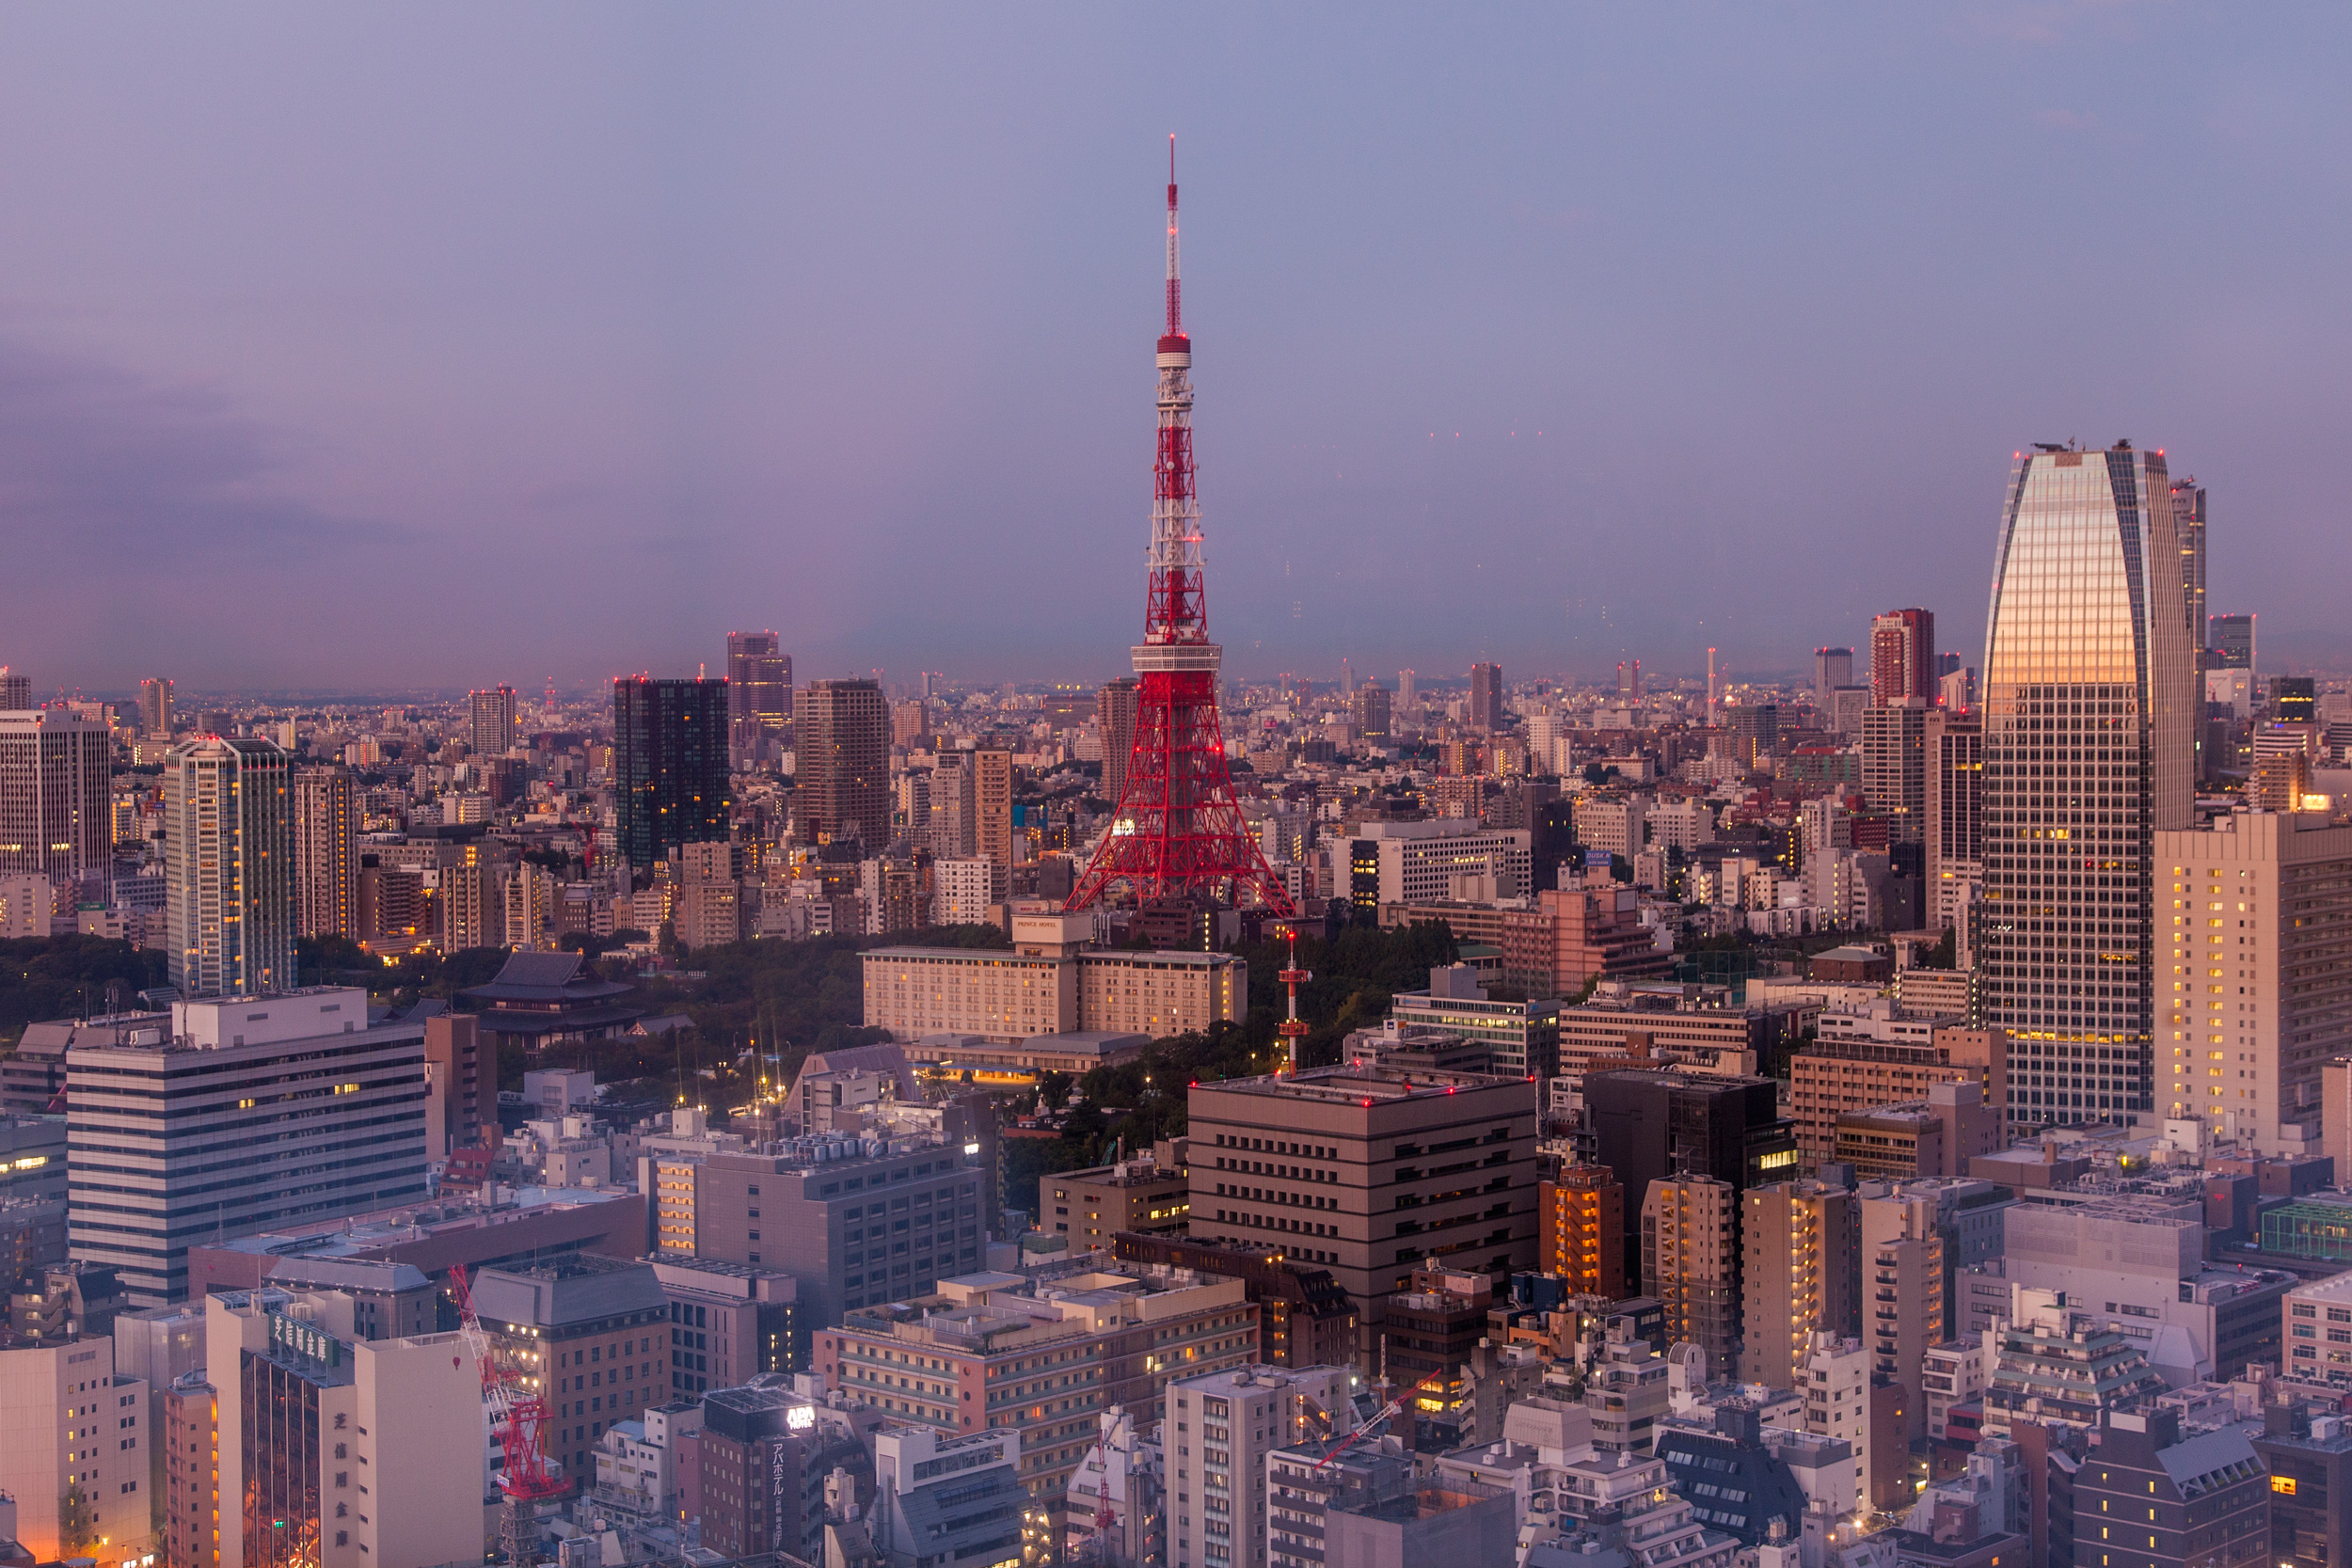 Sunsise Over Tokyo Tower